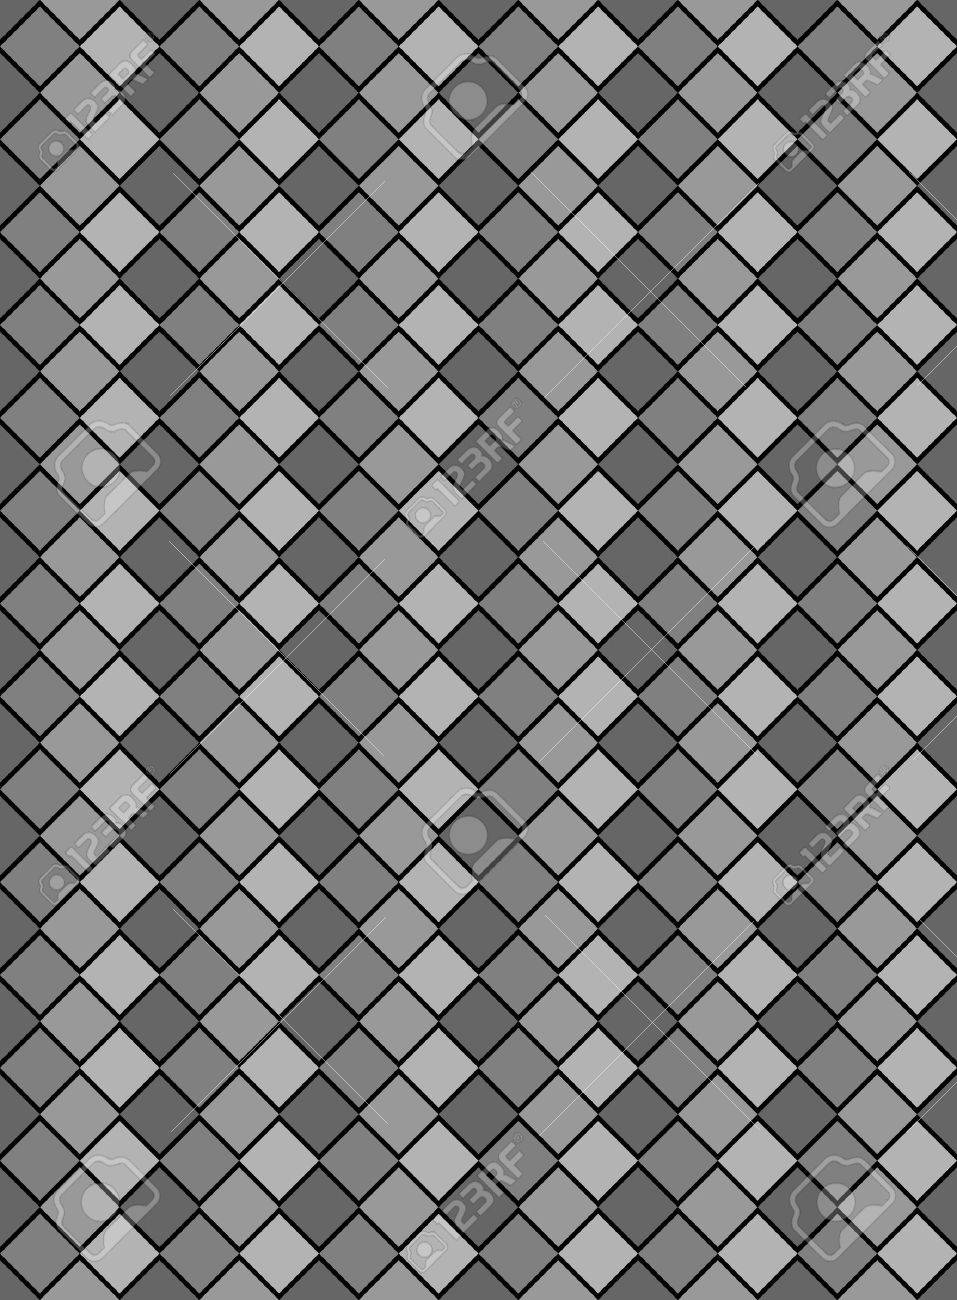 black, white and gray variegated diamond snake style wallpaper texture pattern. - 7347127